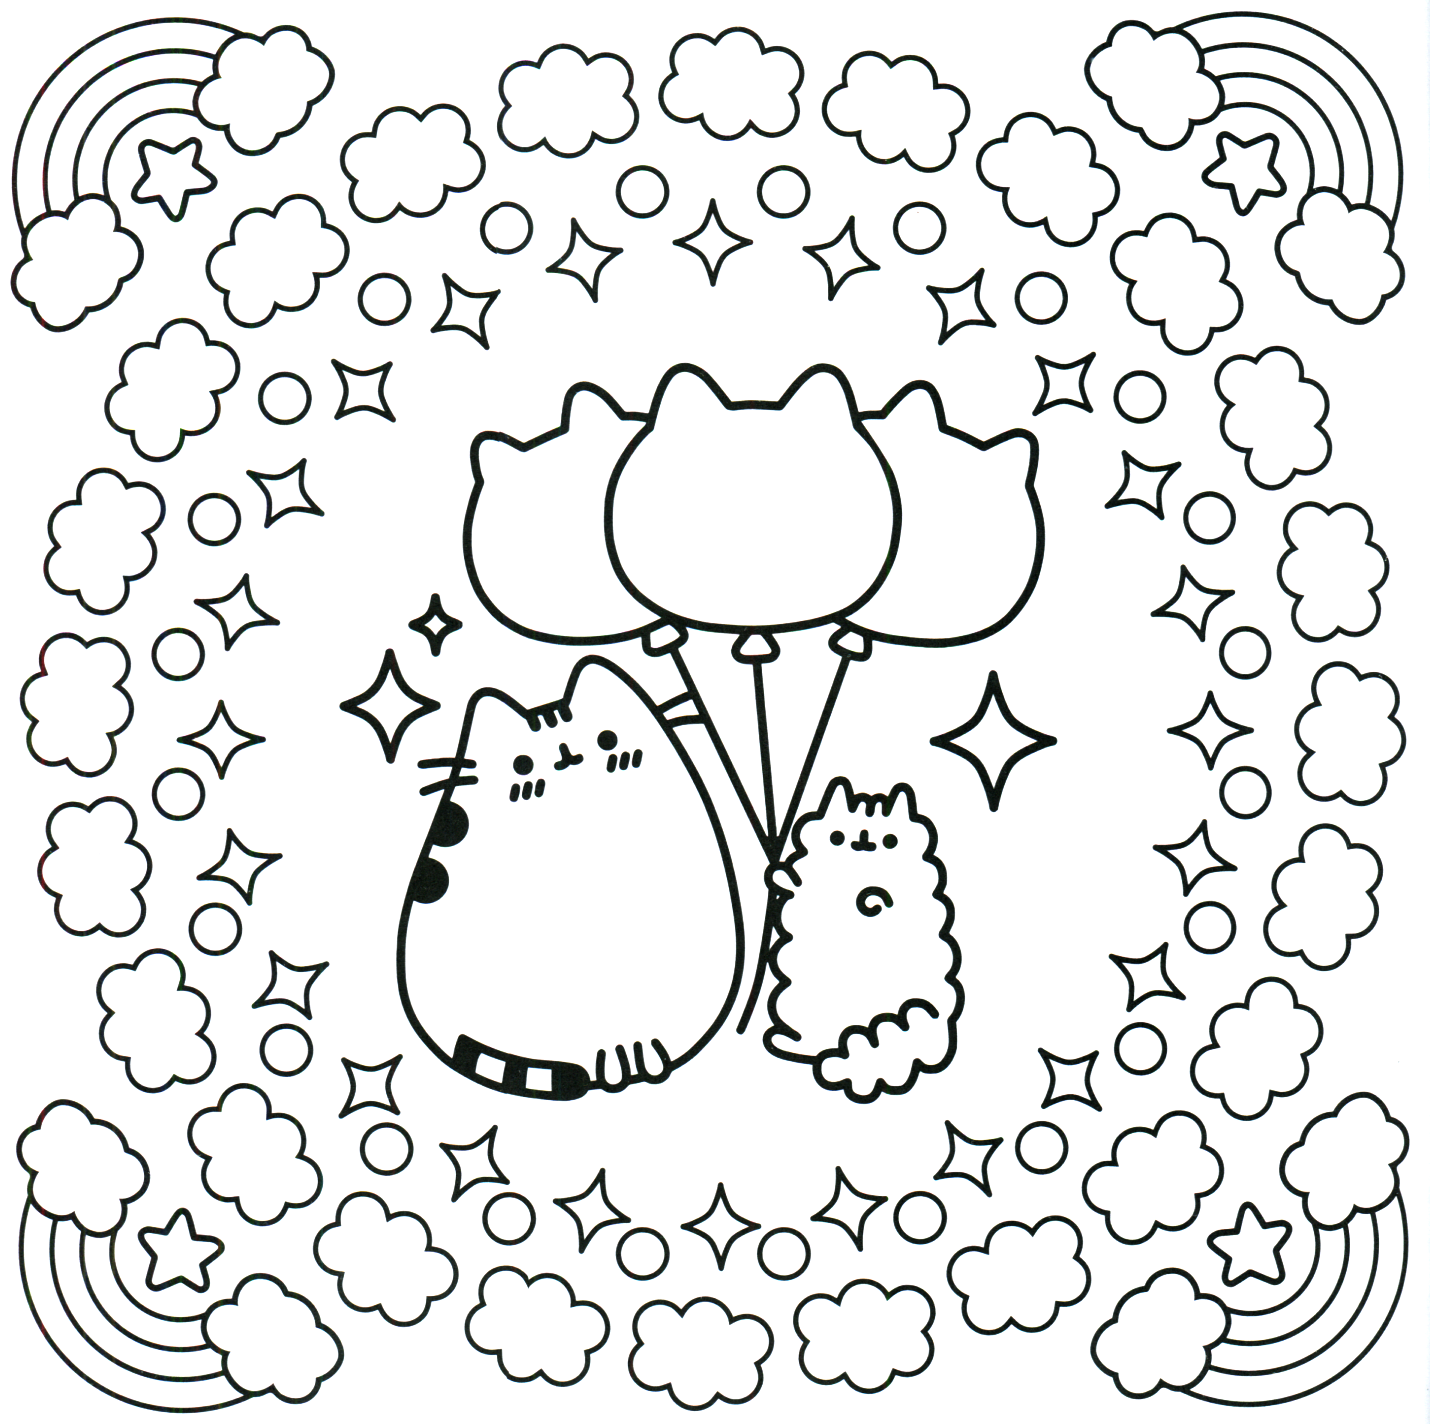 Pusheen Coloring Pages - Best Coloring Pages For Kids in ...